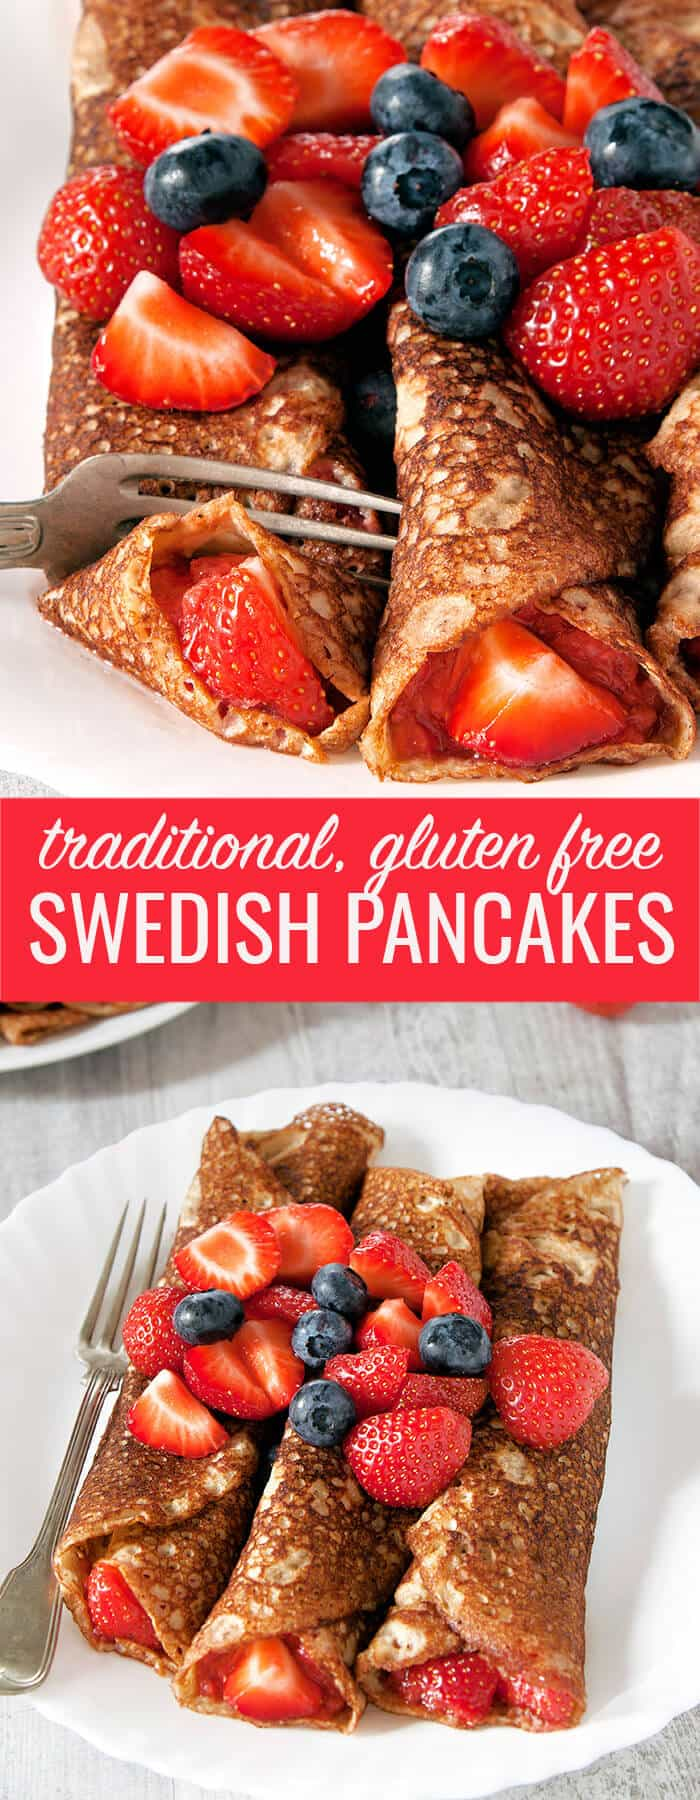 A close up view of Swedish pancakes and an overhead view of Swedish pancakes on white plates